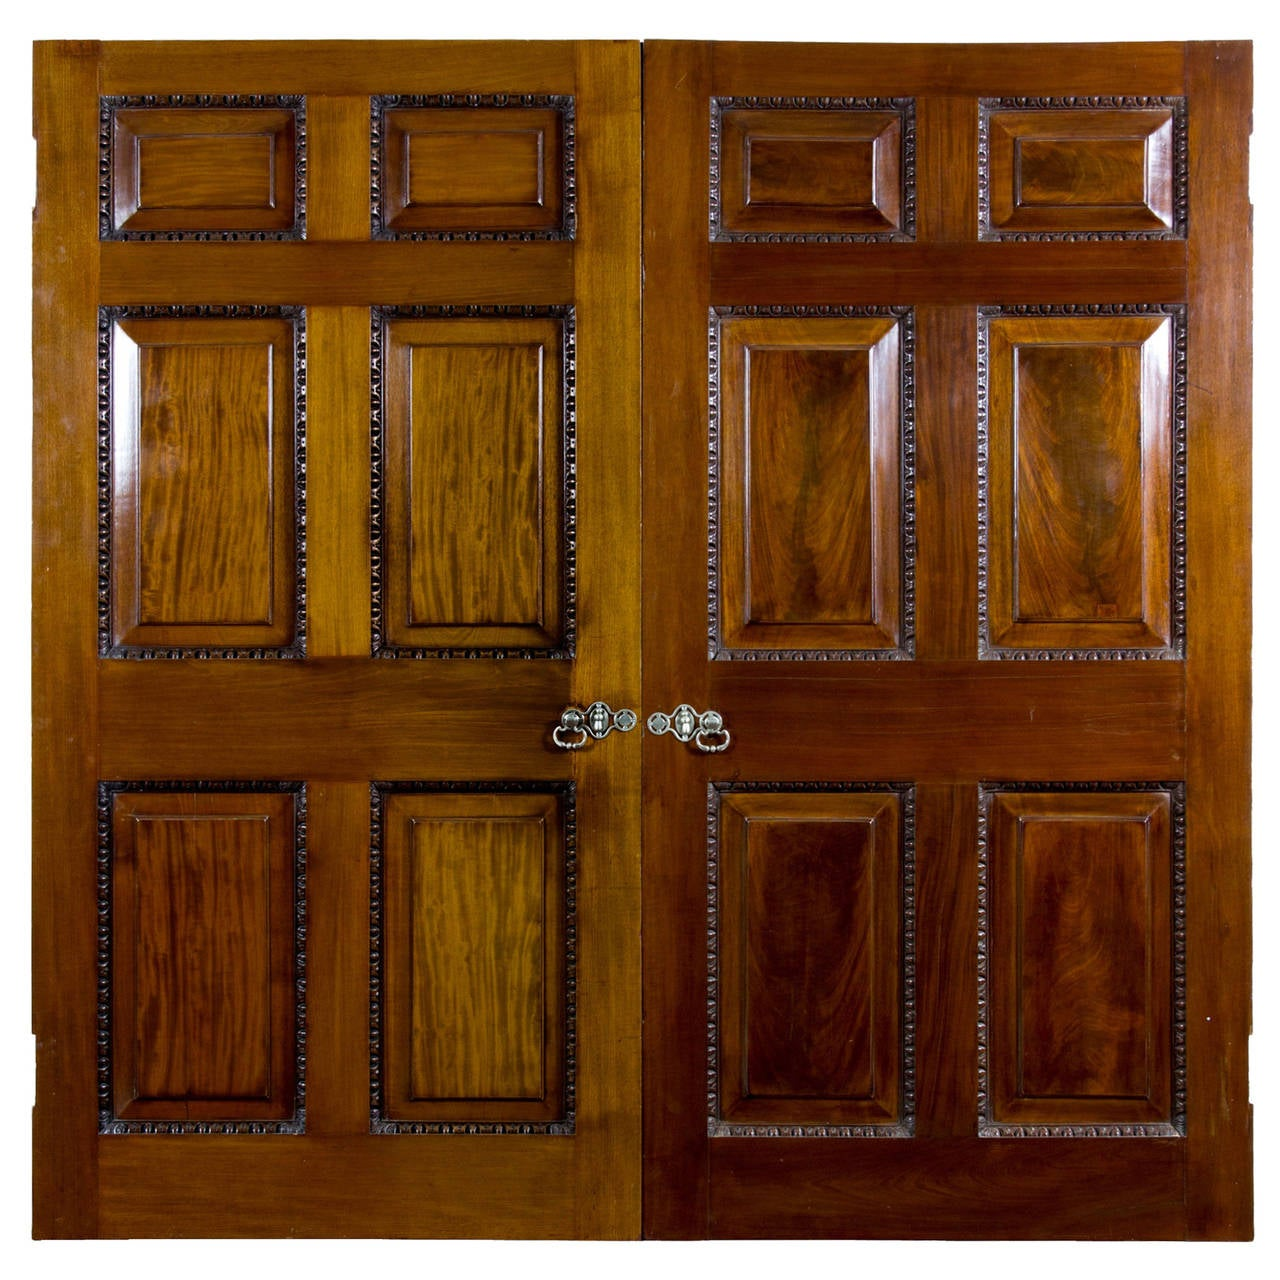 Mahogany Chippendale Interior Doors with Original Paktong Hardware For Sale  sc 1 st  1stDibs & Mahogany Chippendale Interior Doors with Original Paktong Hardware ...